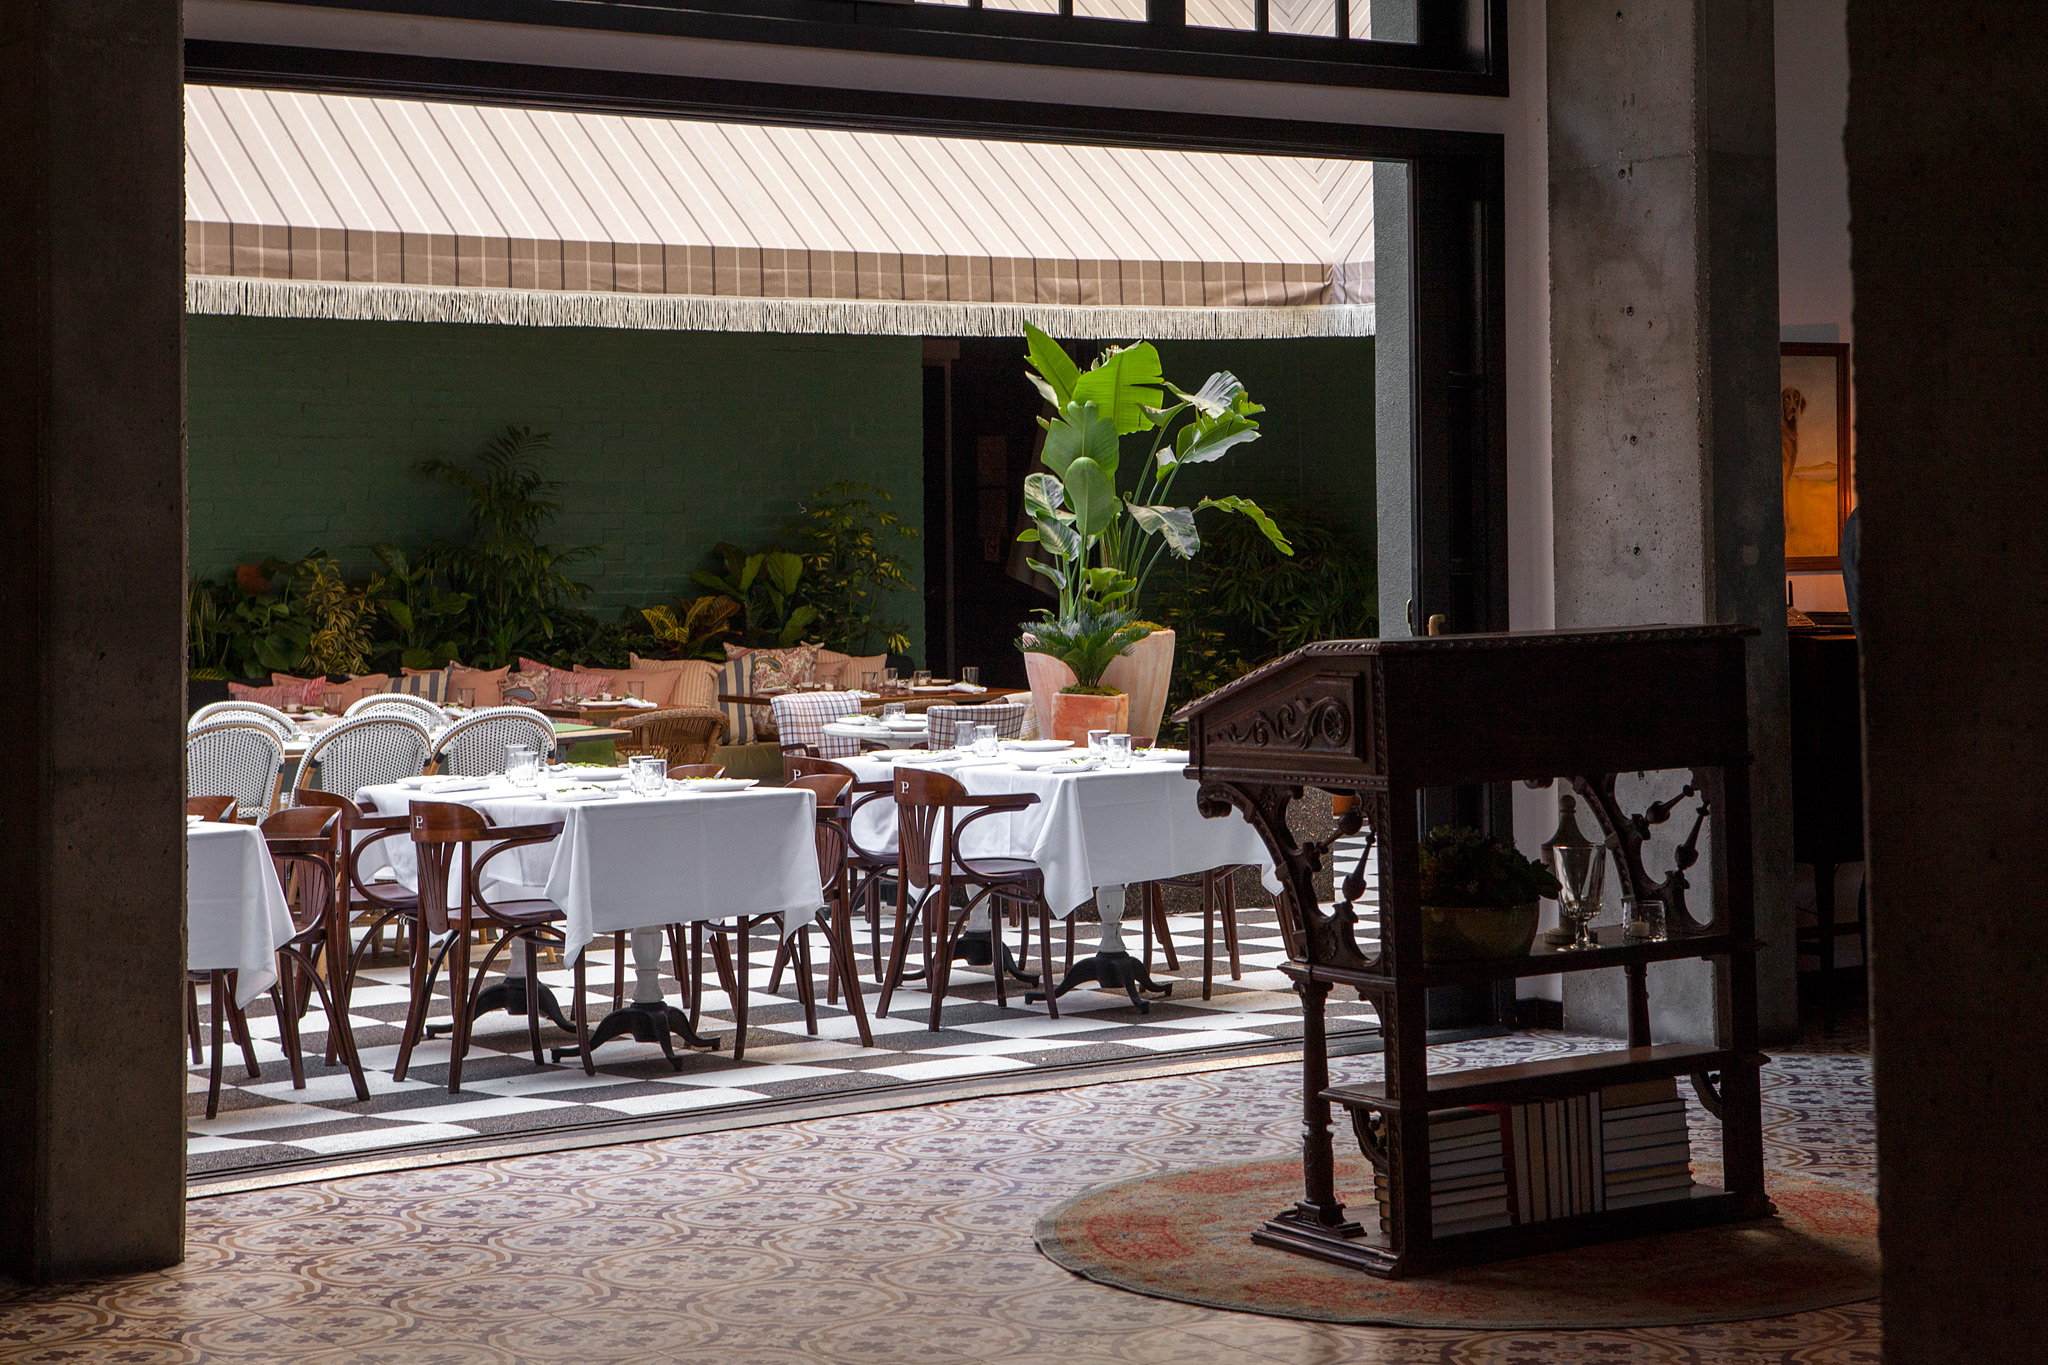 Shot of Mardi courtyard from hotel lobby. Patterned tiles inside lobby, wood host stand on circular carpet, courtyard with checker floor, white tables, wood chairs, a lot of green plants.